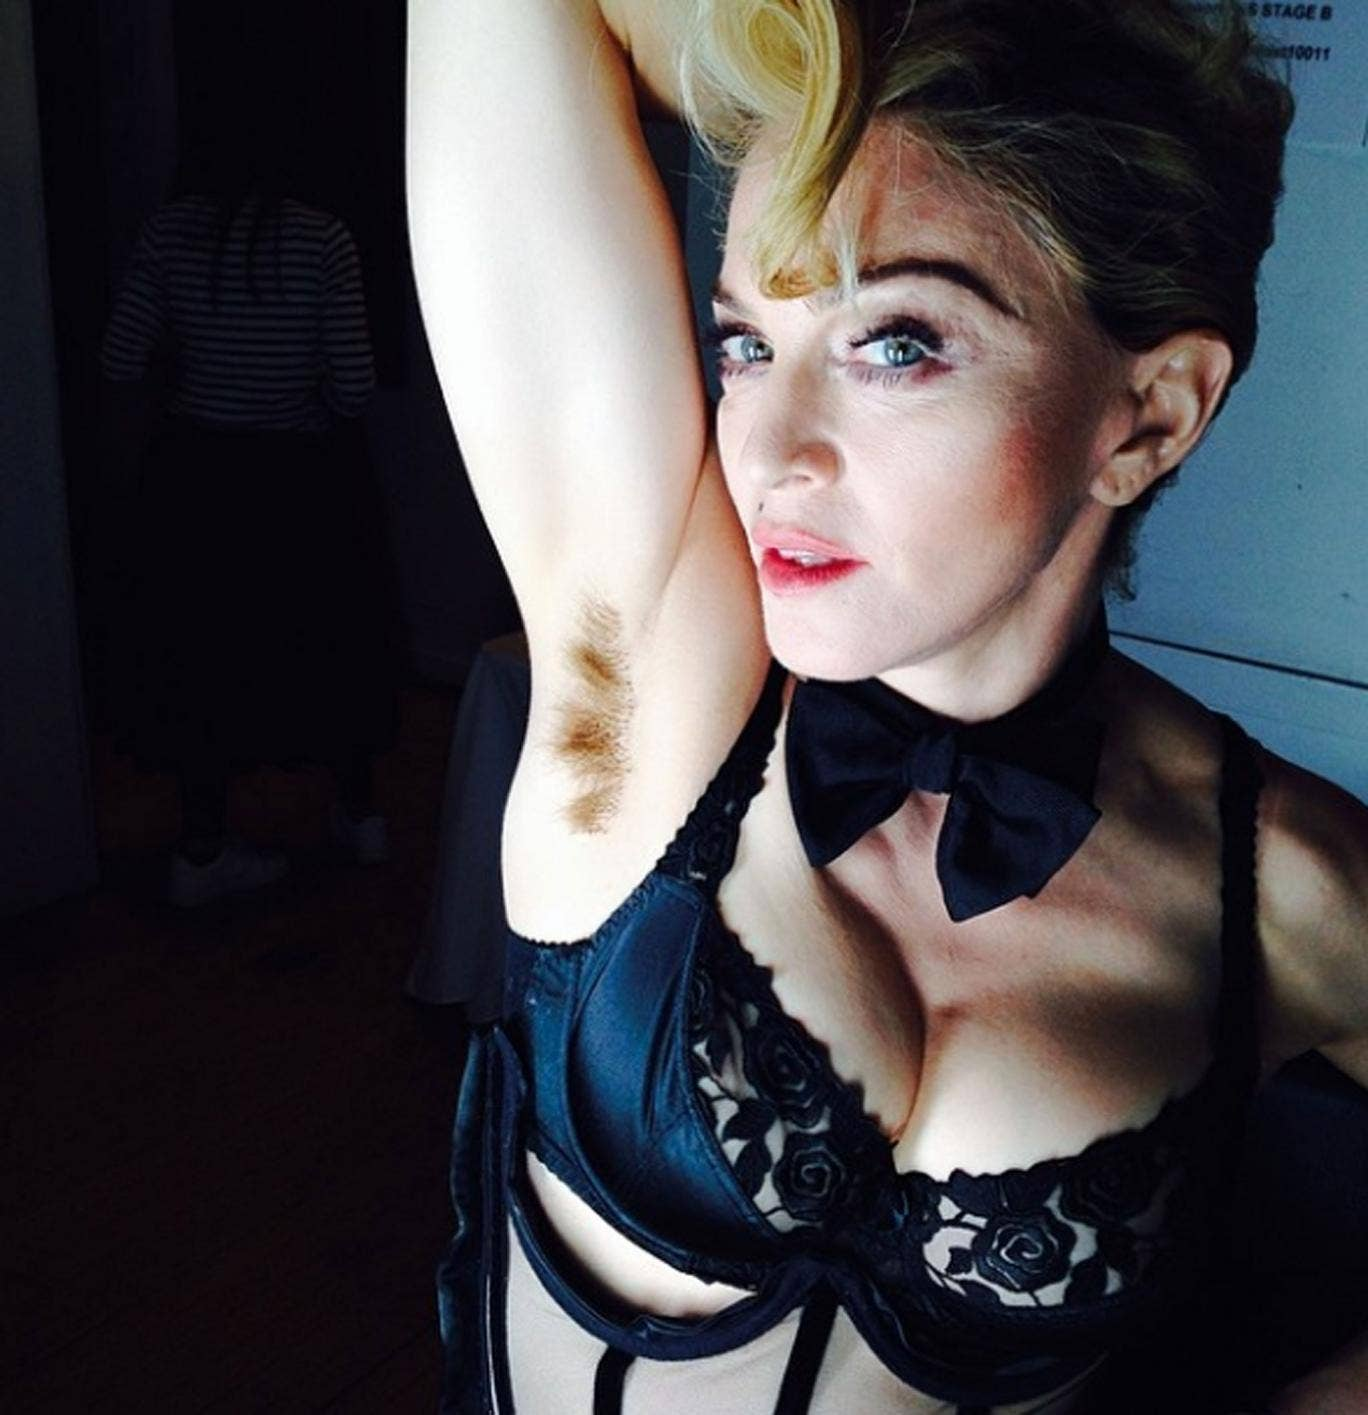 Madonna holds up her right arm to reveal her unshaven armpit